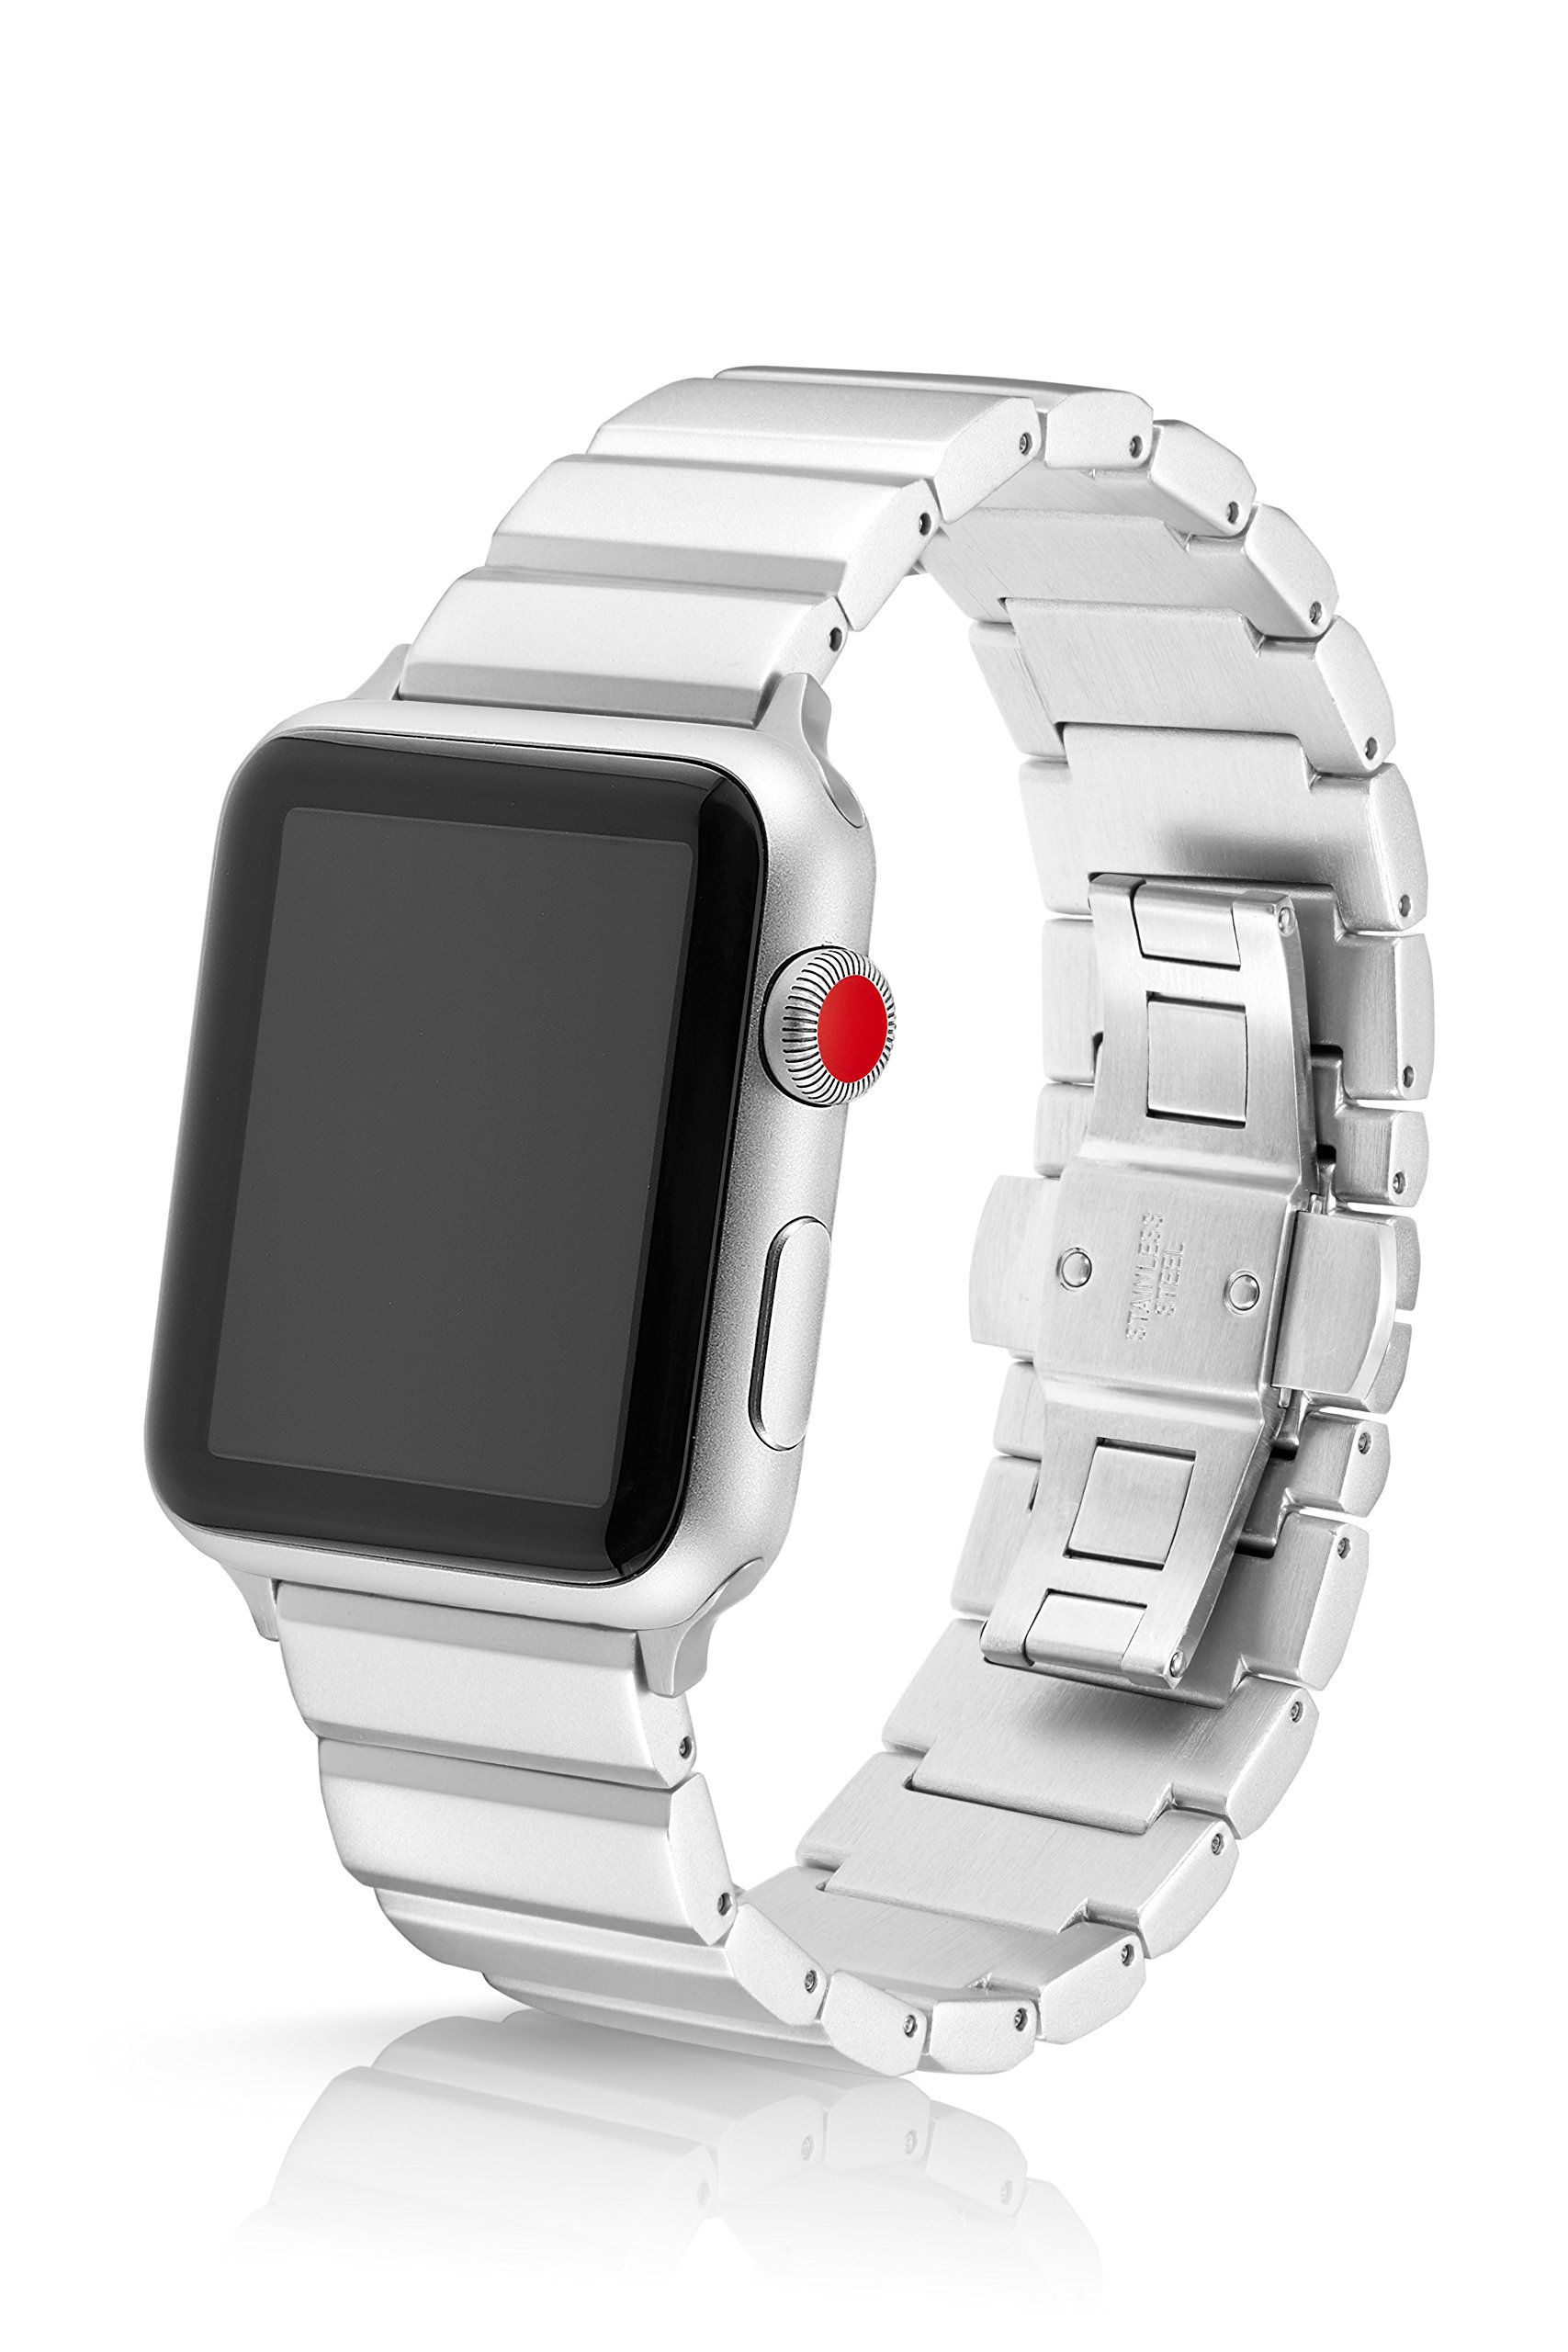 42/44mm JUUK Silver Ligero LT Premium Watch Band Made for The Apple Watch, Using Aircraft Grade, Hard Anodized 6000 Series Aluminum with a Solid Stainless Steel Butterfly deployant Buckle (Matte)